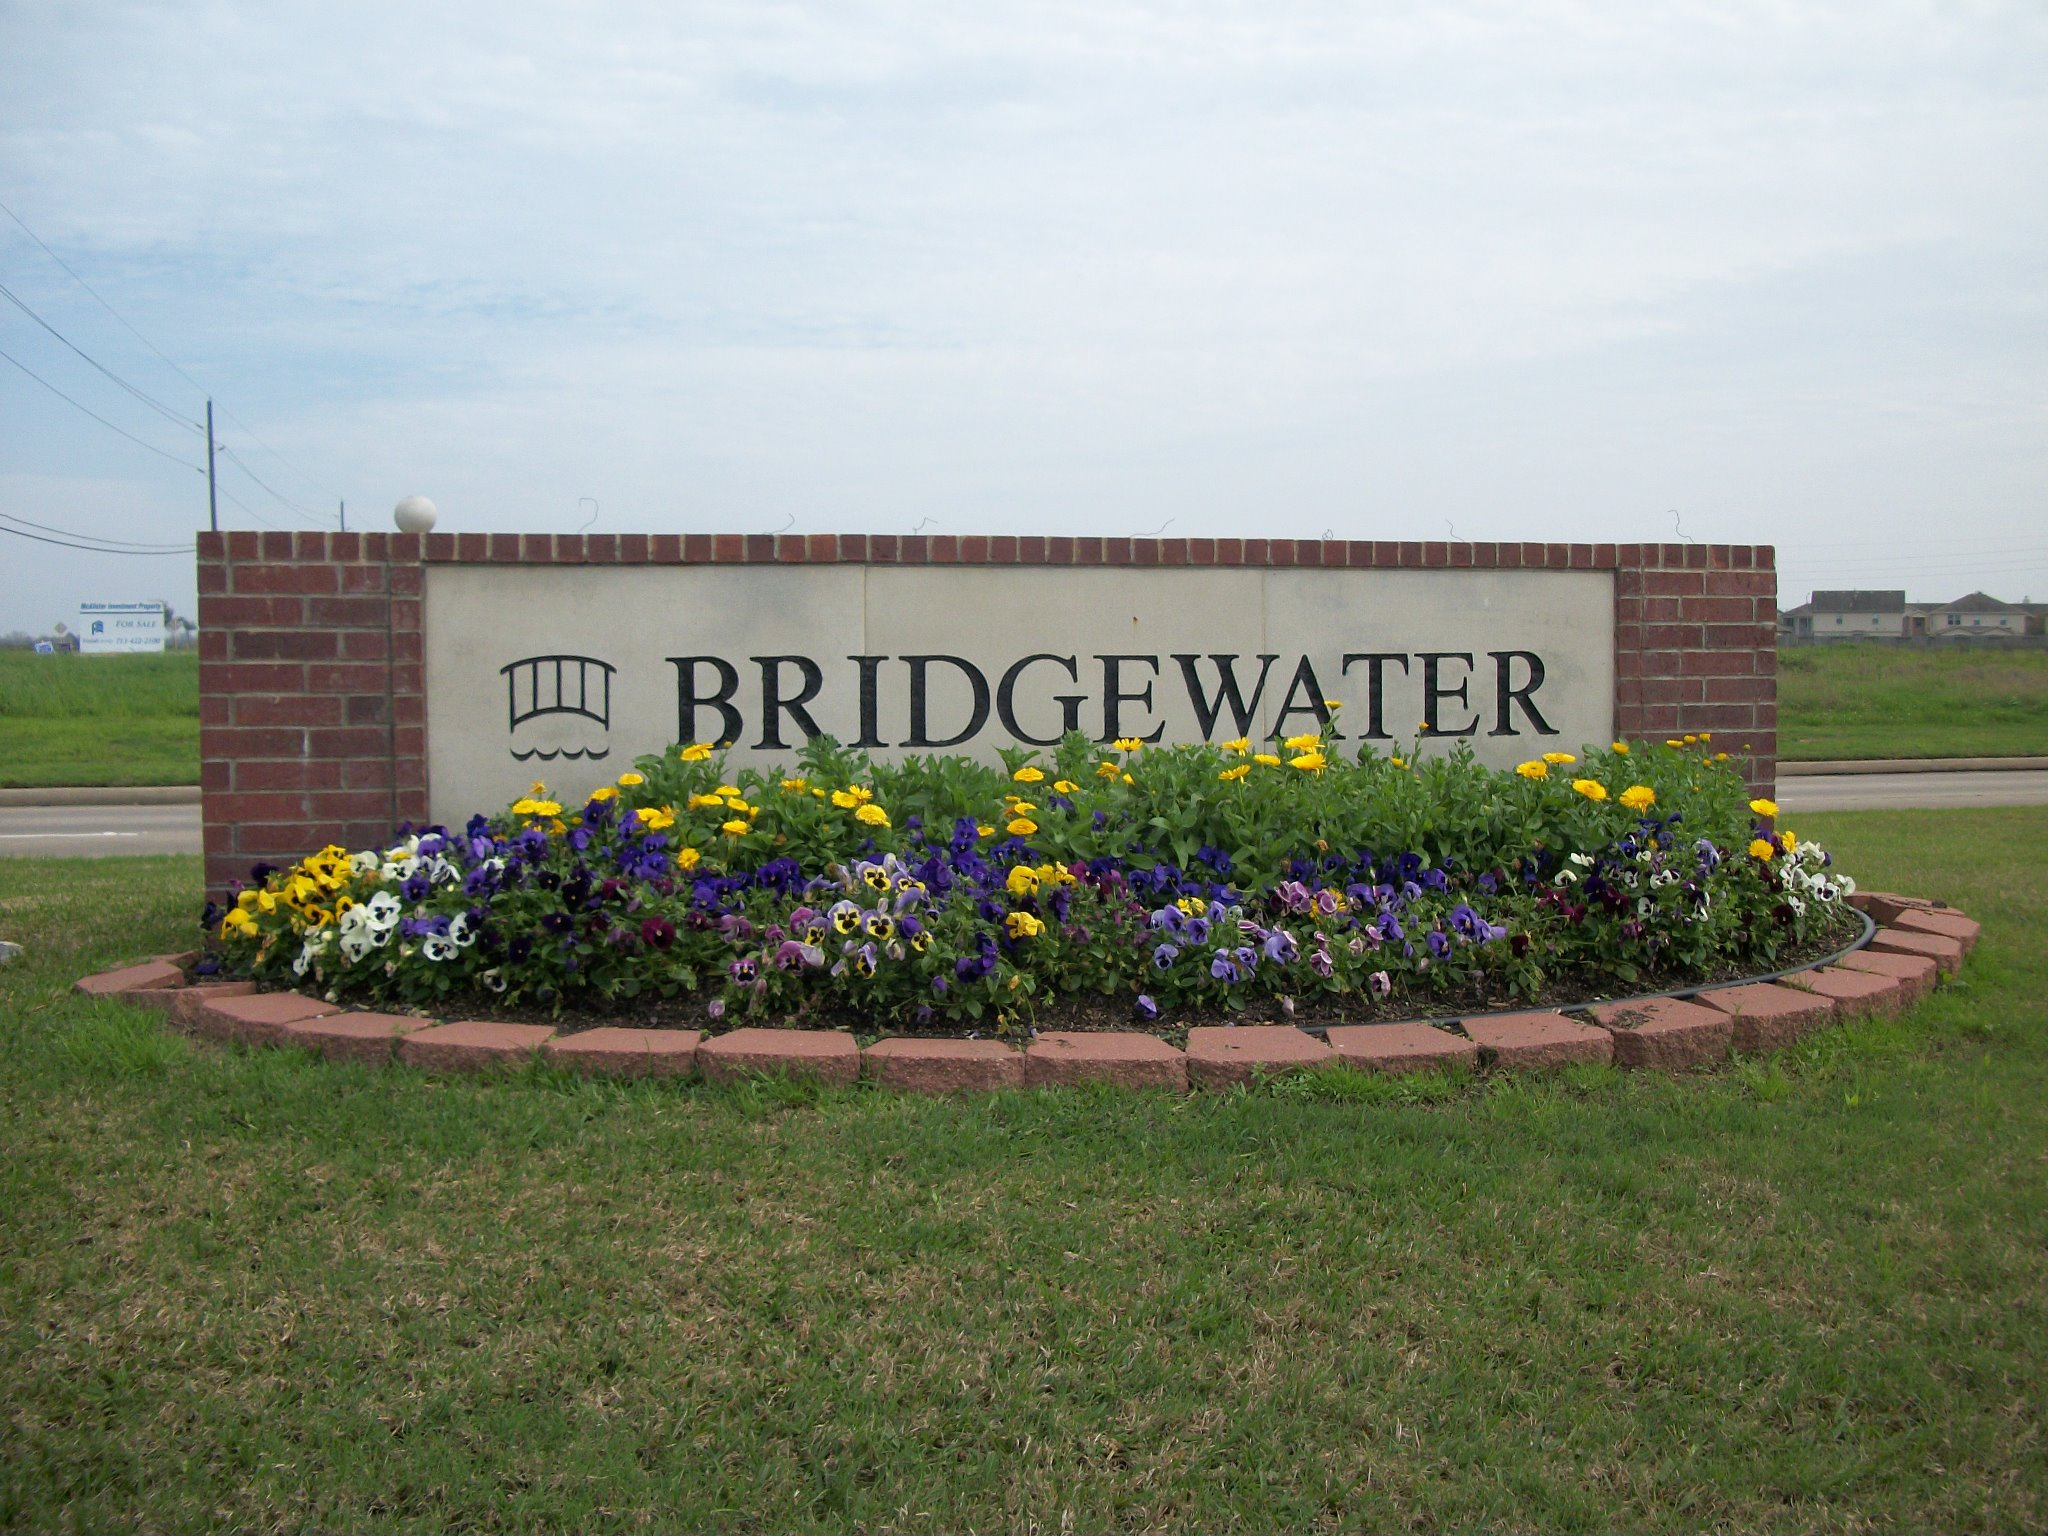 Bridgewater, Homes for Sale in Katy, TX, The Lippincott Team